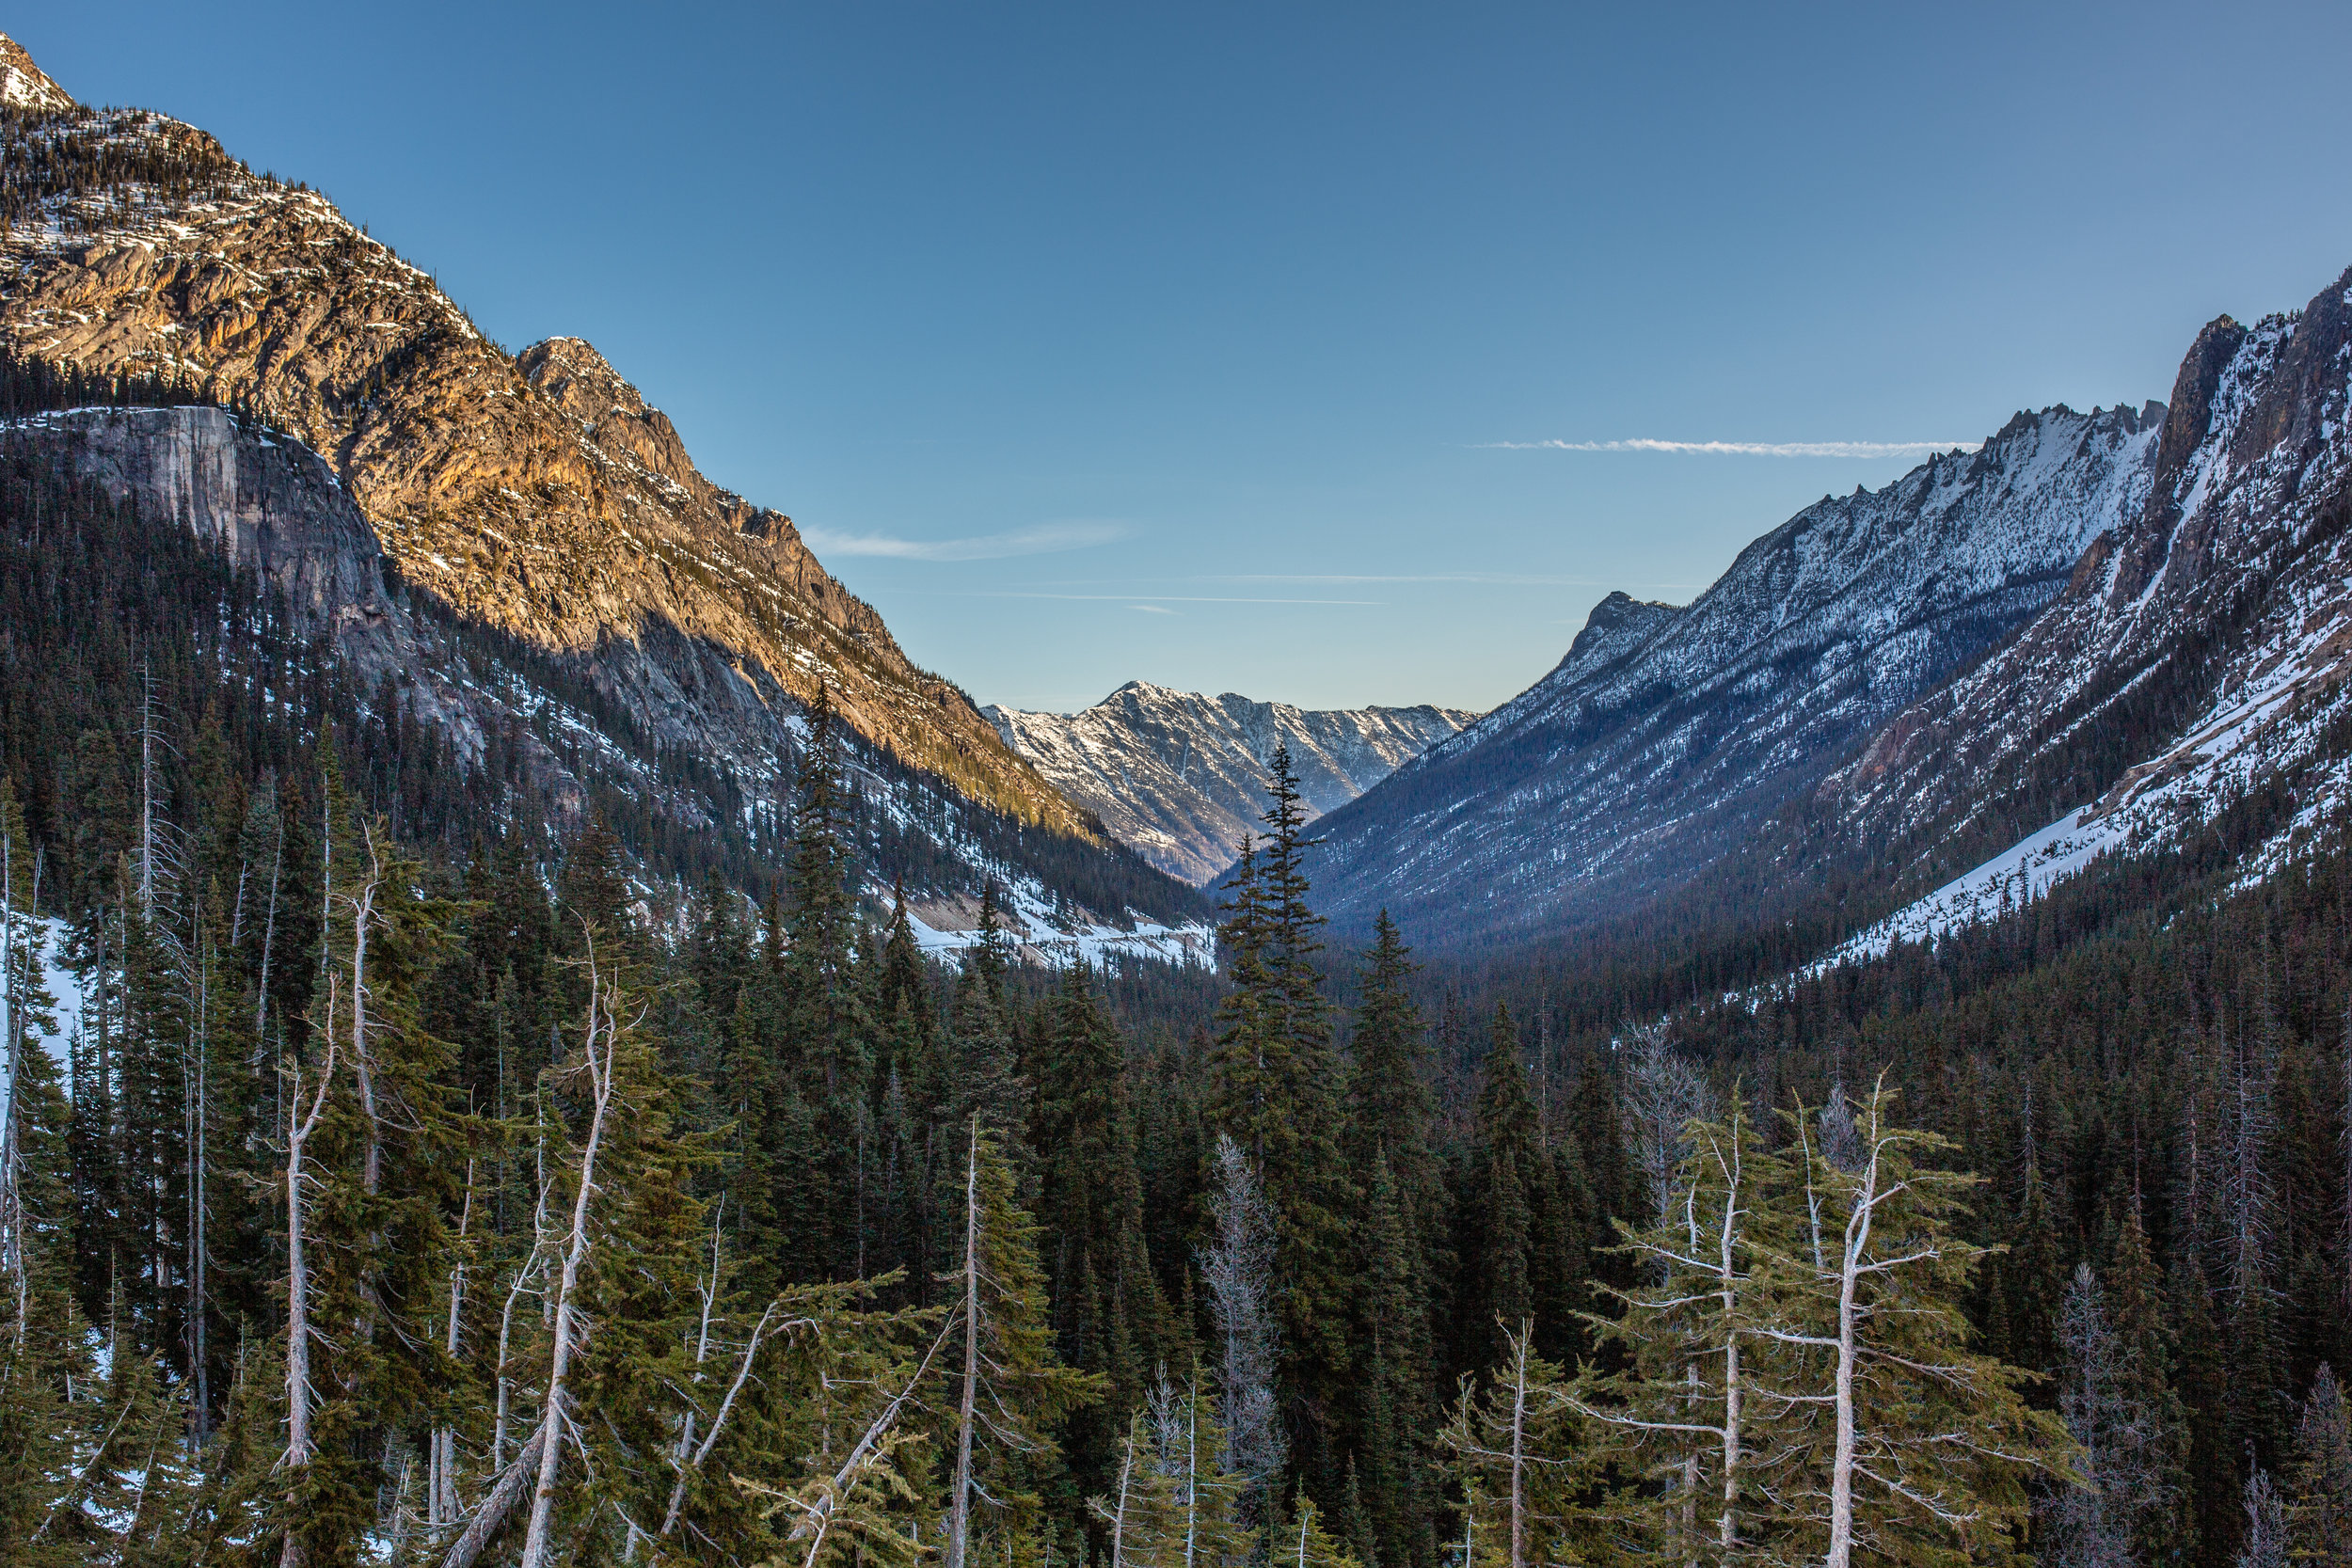 The Cascade Mountains are rich with geologic finds all along the Sauk River.